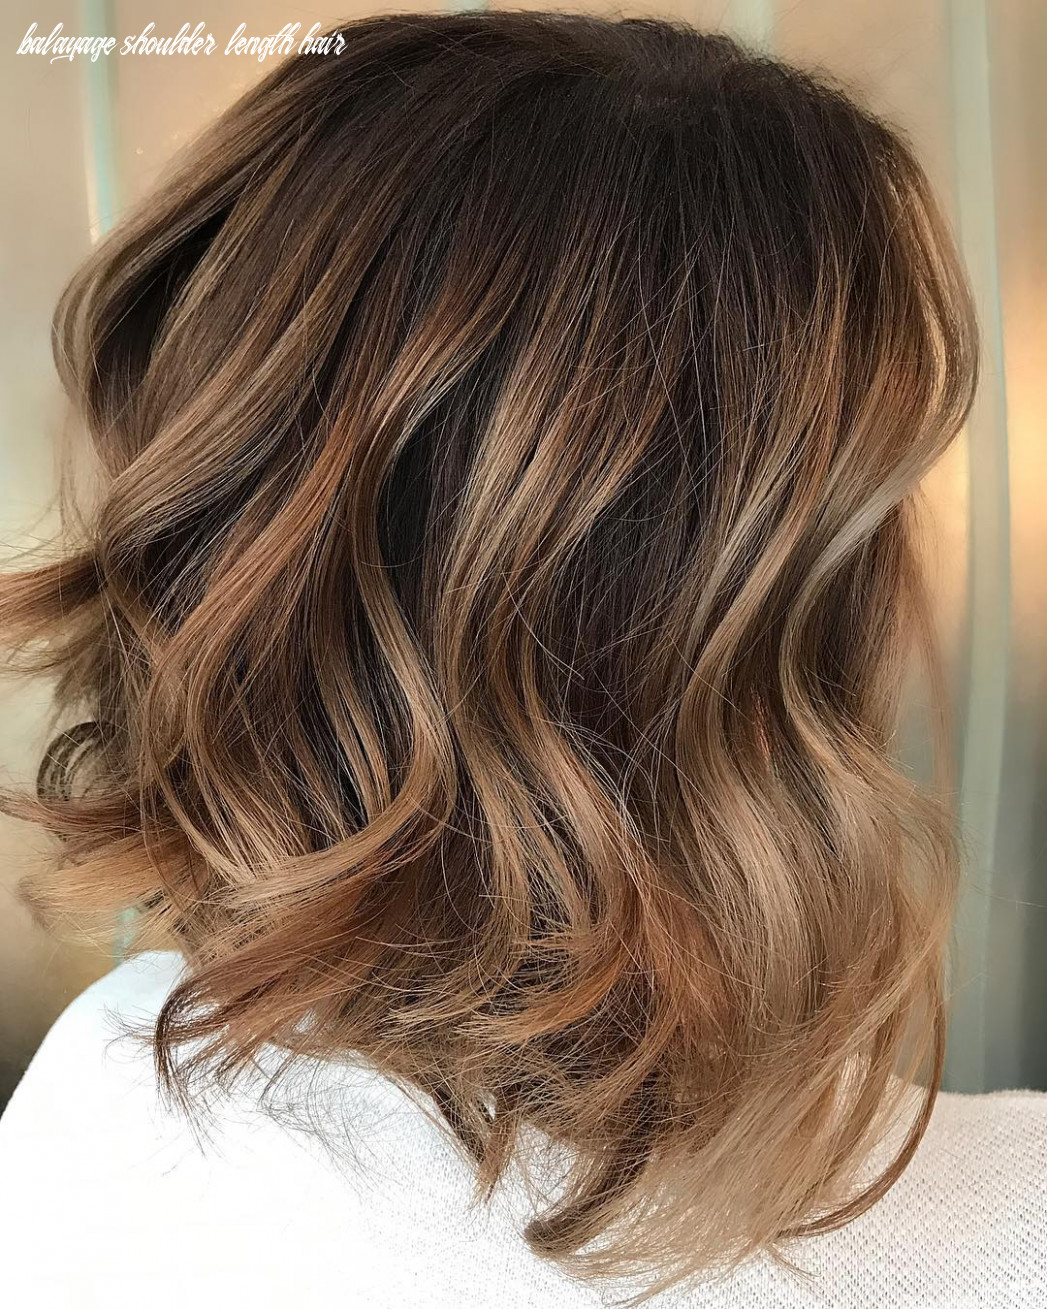 10 Trendy Brown Balayage Hairstyles for Medium-Length Hair 10